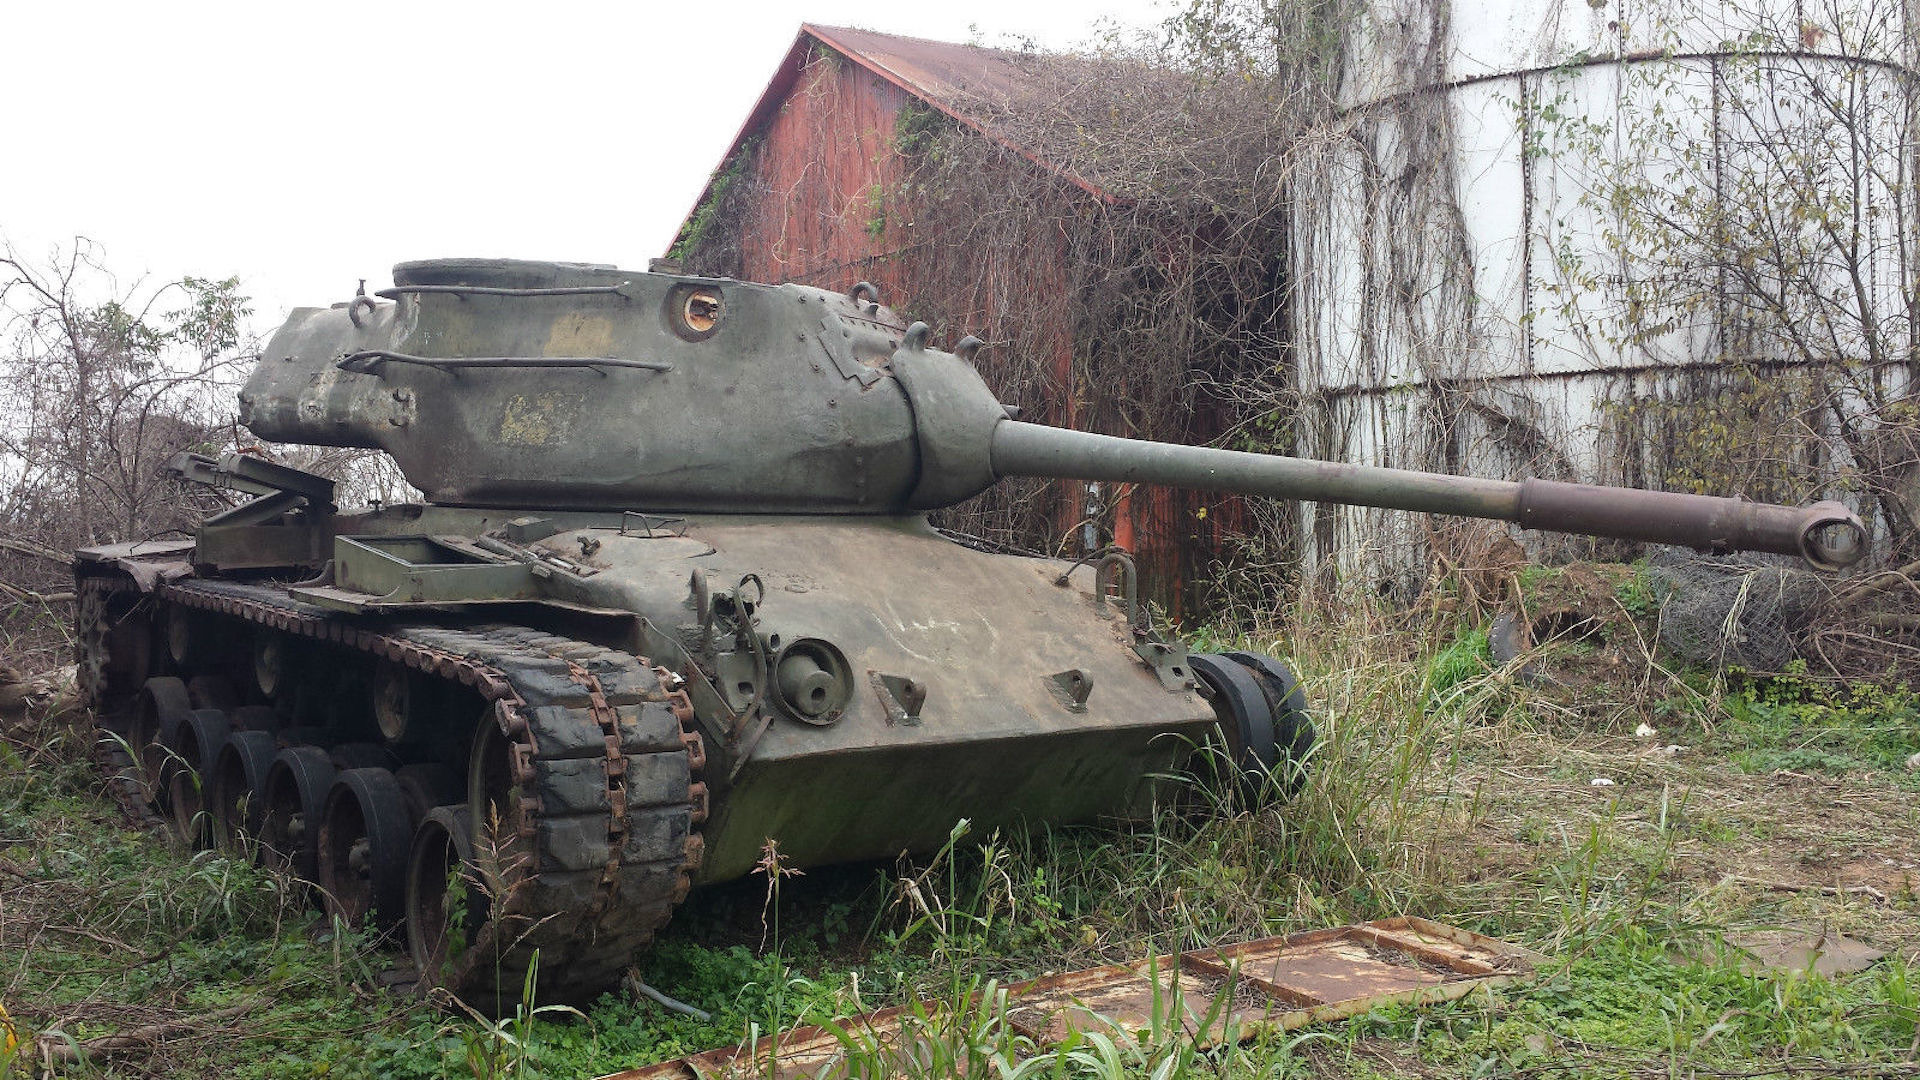 Military Tanks For Sale - Tank For Sale On Ebay Some Assembly Required